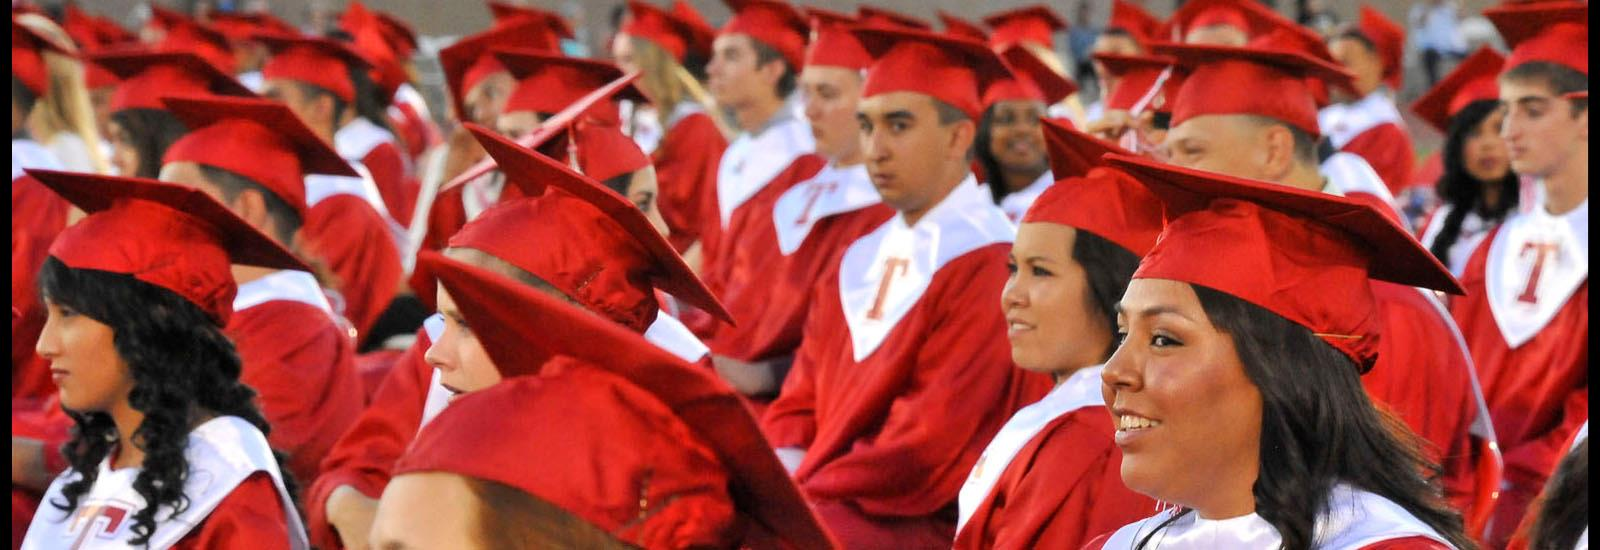 The largest graduating class in the district forms a sea of red.